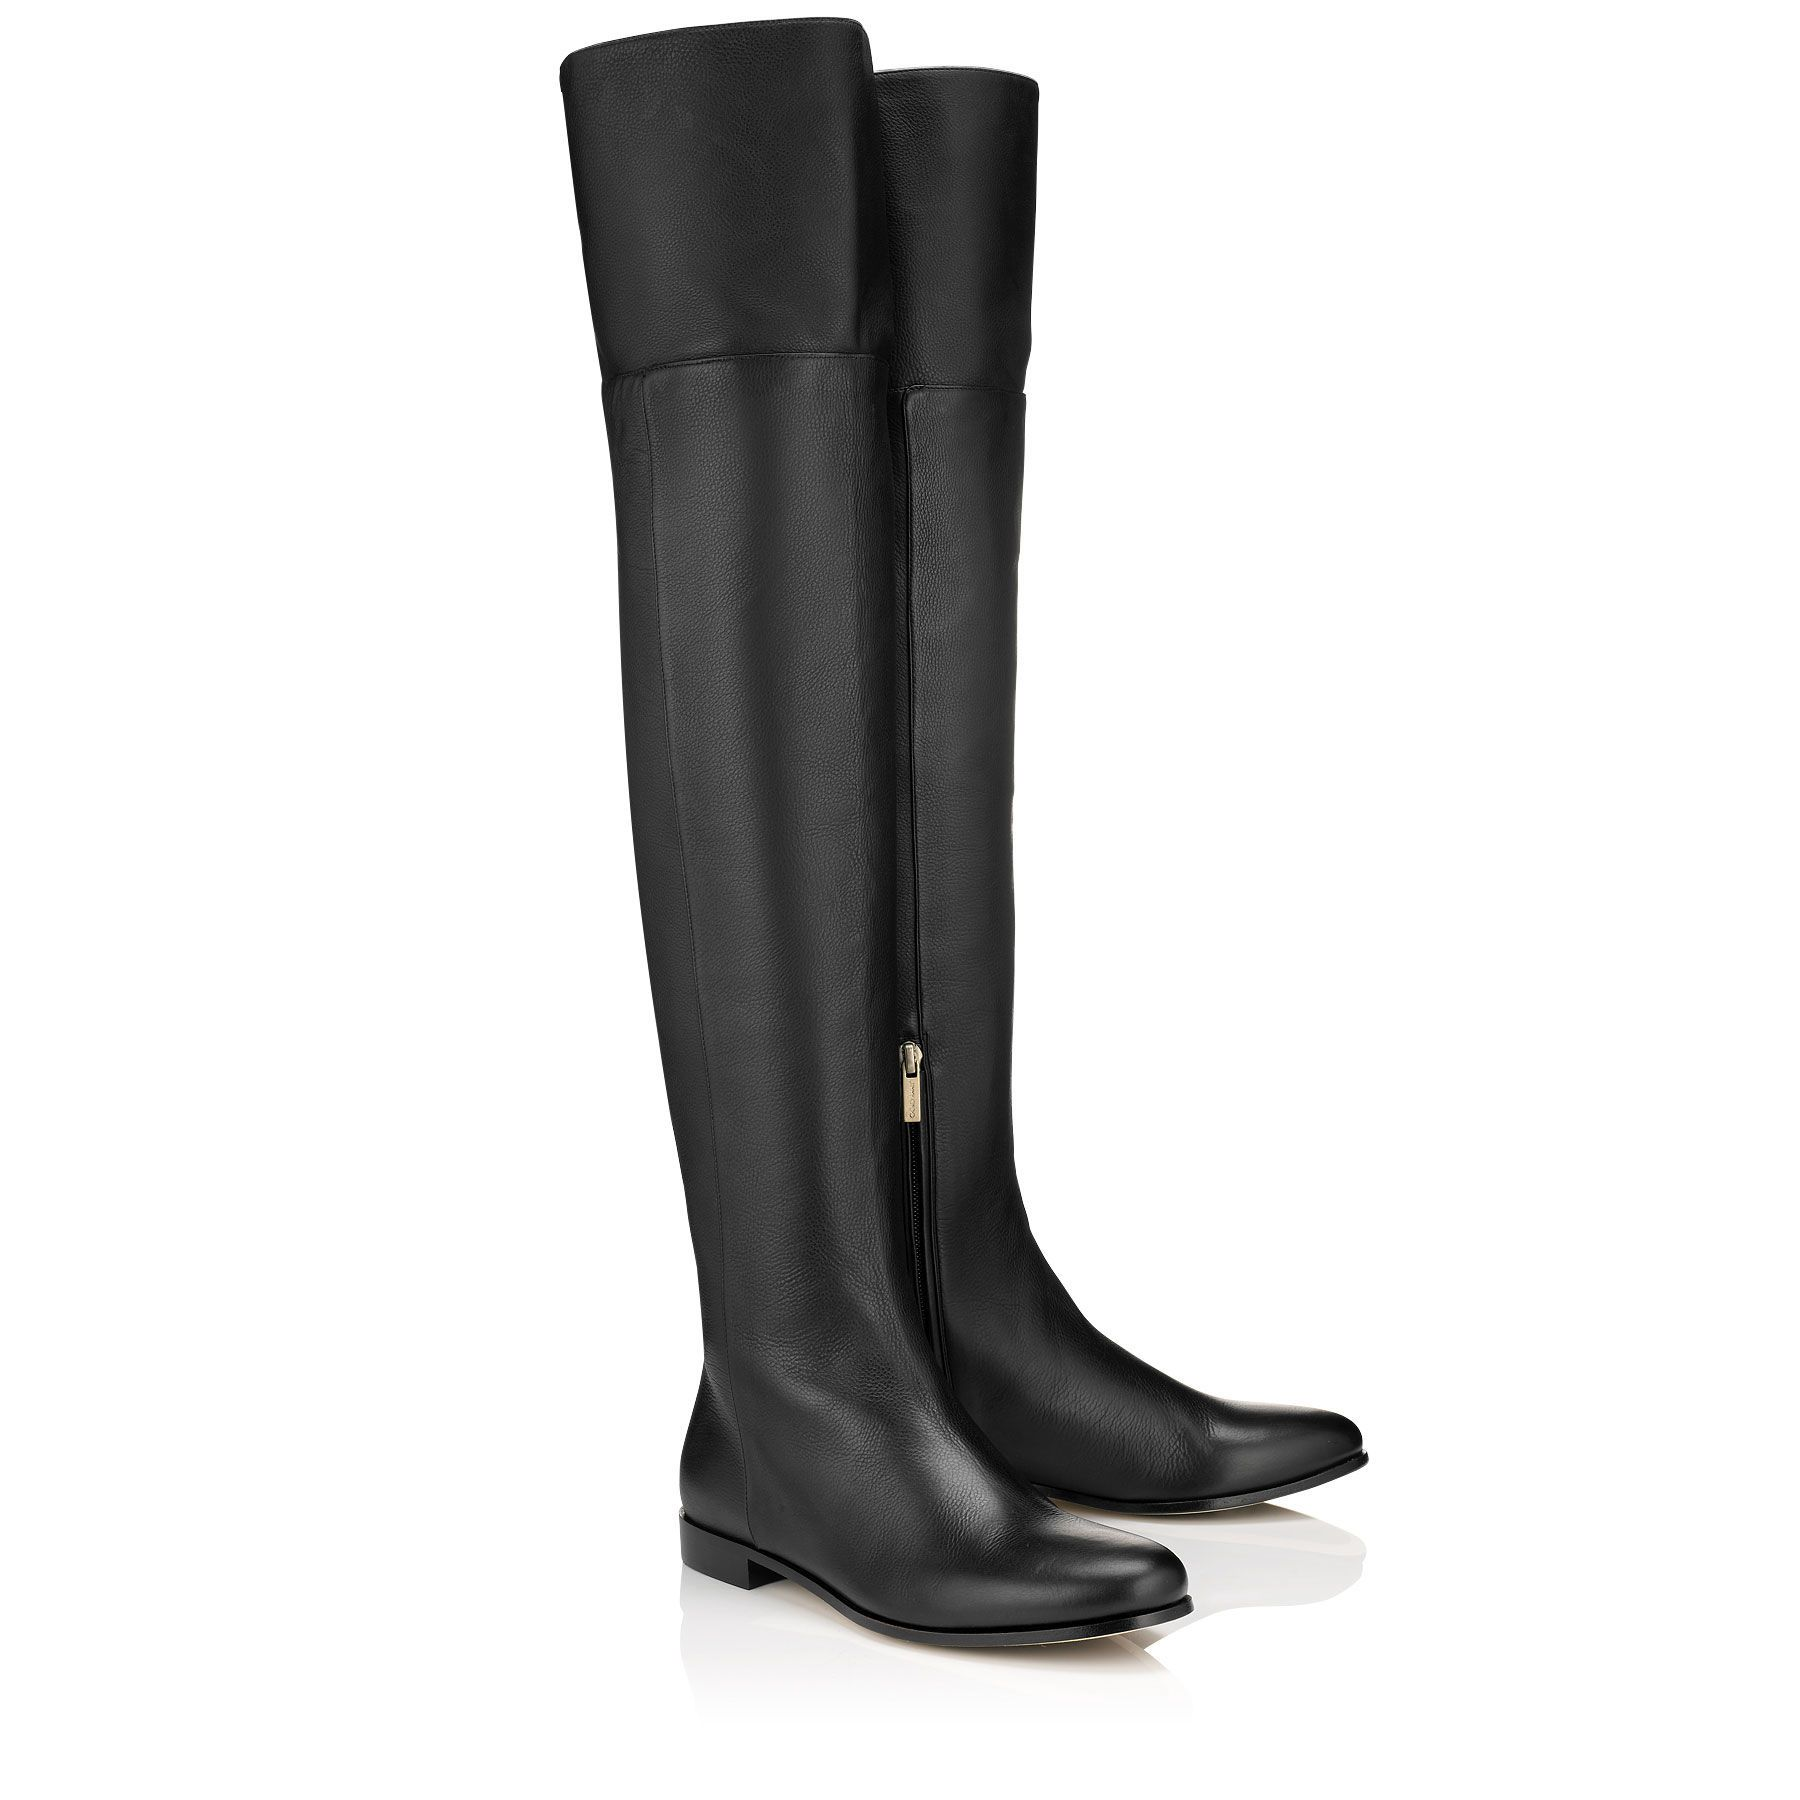 Jimmy Choo | Mitty Flat Over-the-knee black leather boots | Shoes ...